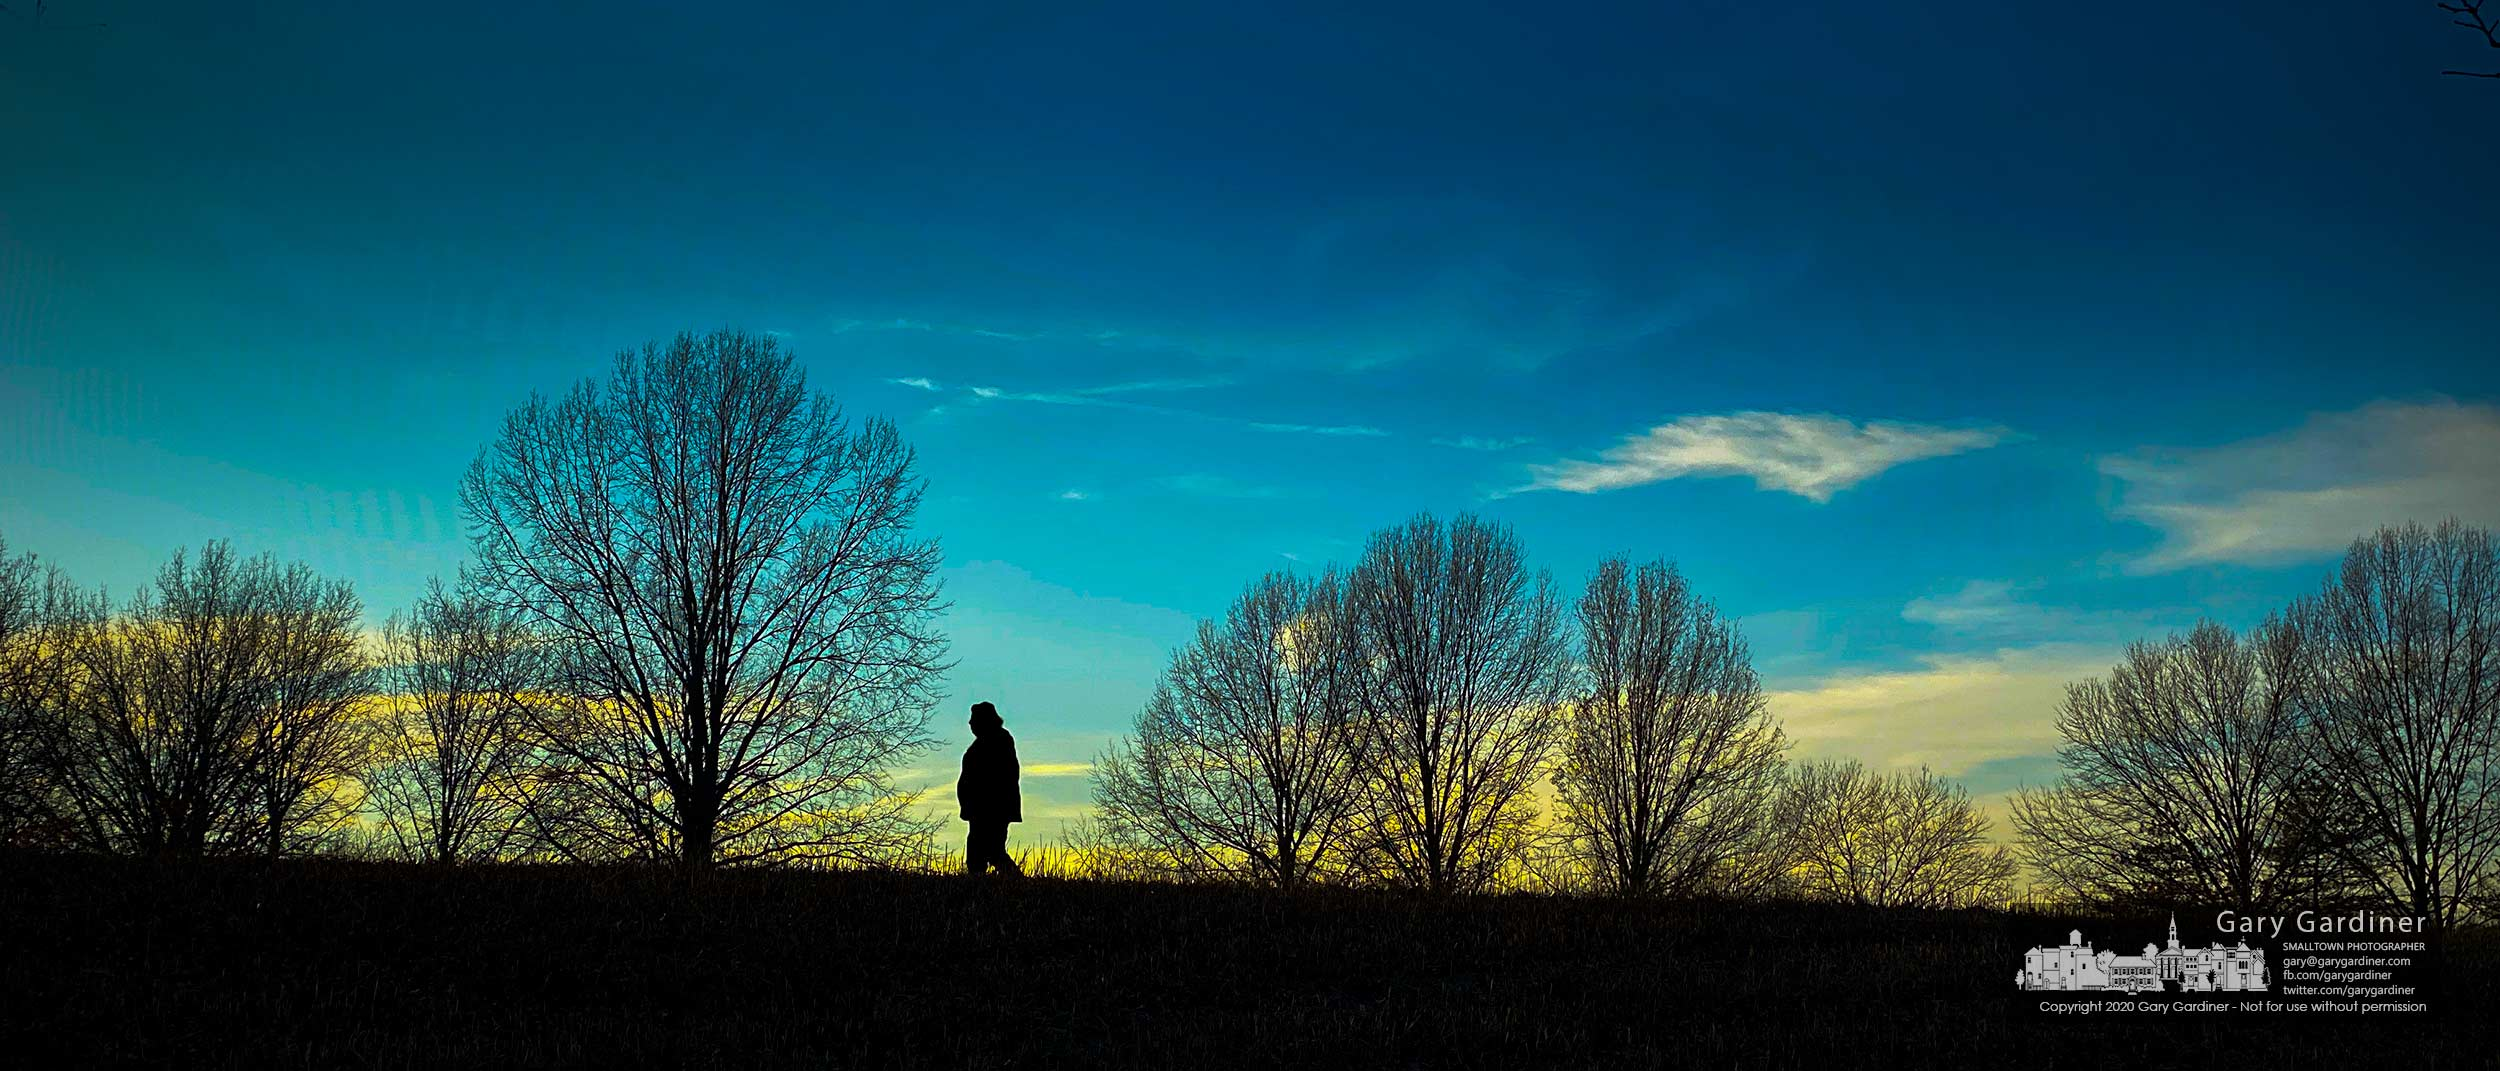 A woman crosses against the horizon illuminated by Thursday's sunset in Sharon Woods Park. My Final Photo for Dec. 10, 2020.